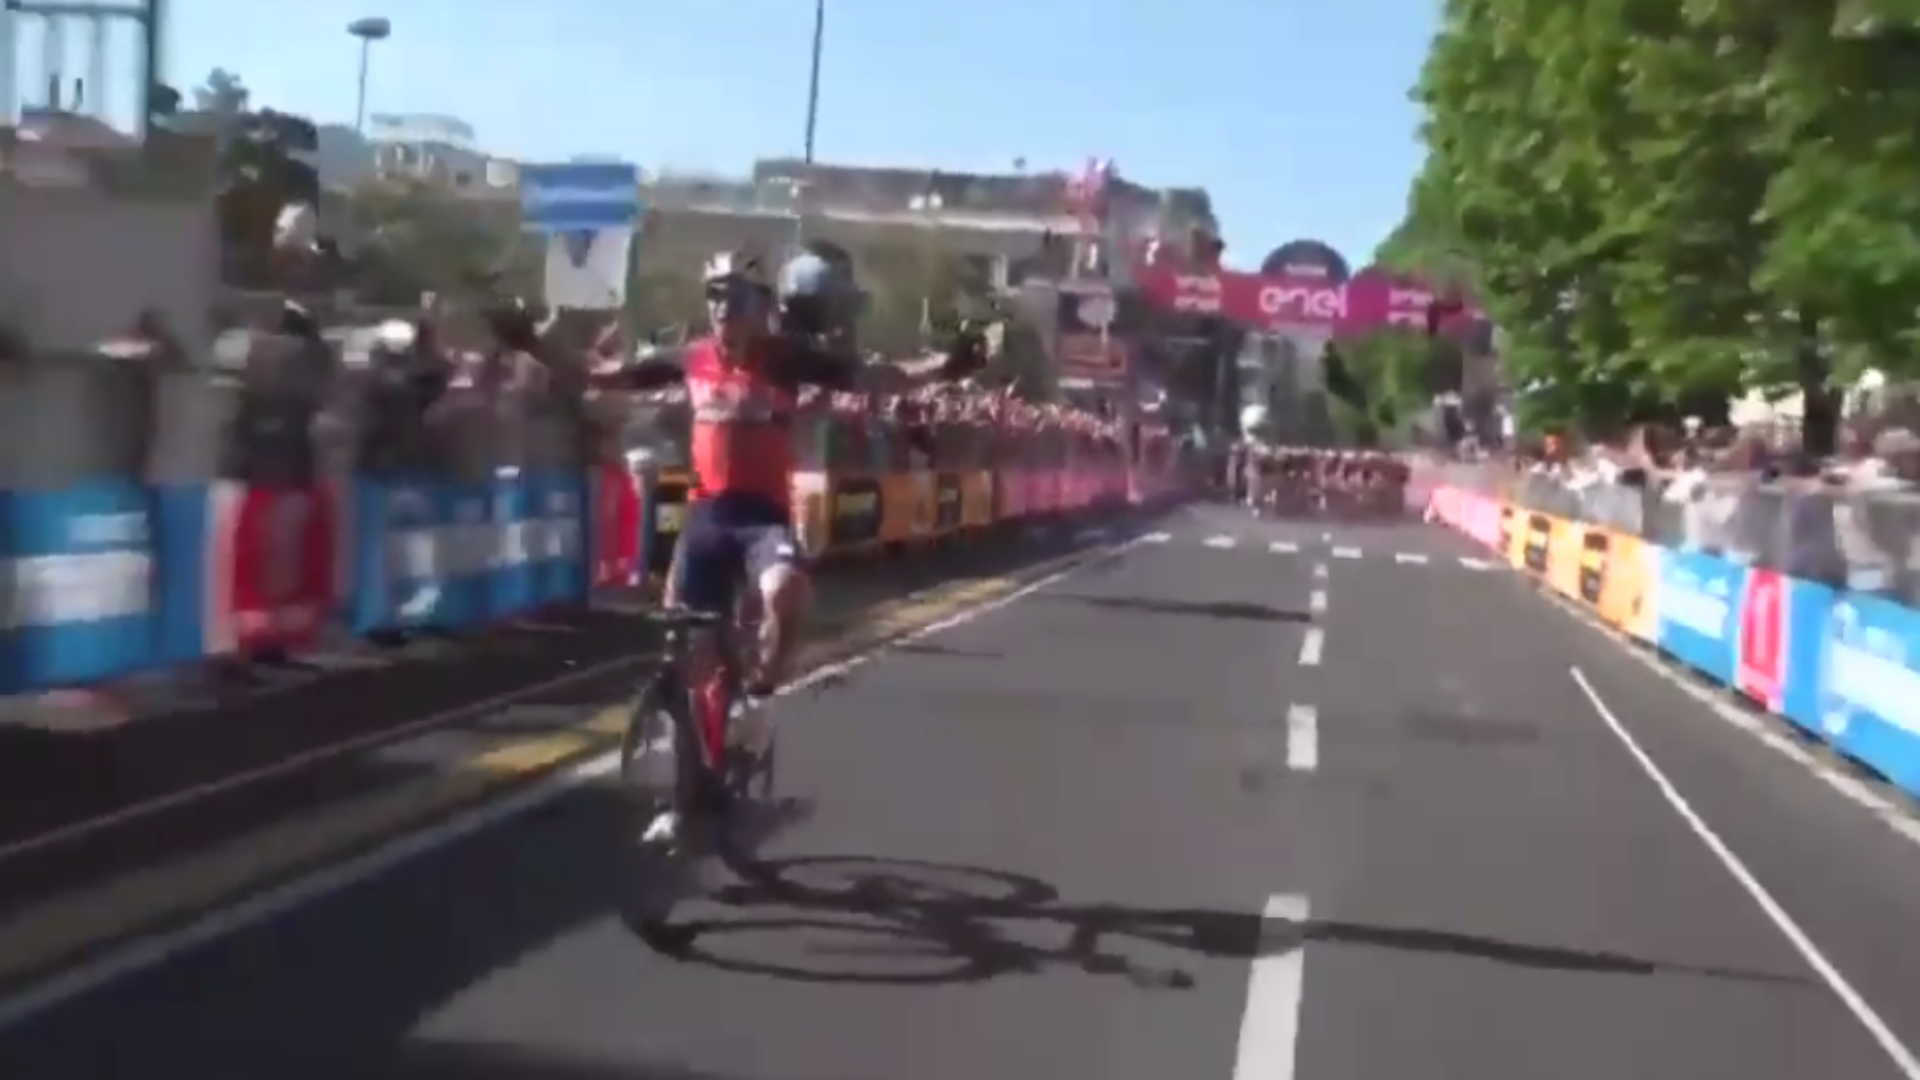 Dillier wins stage 6 of the Giro, Canada's Woods fifth